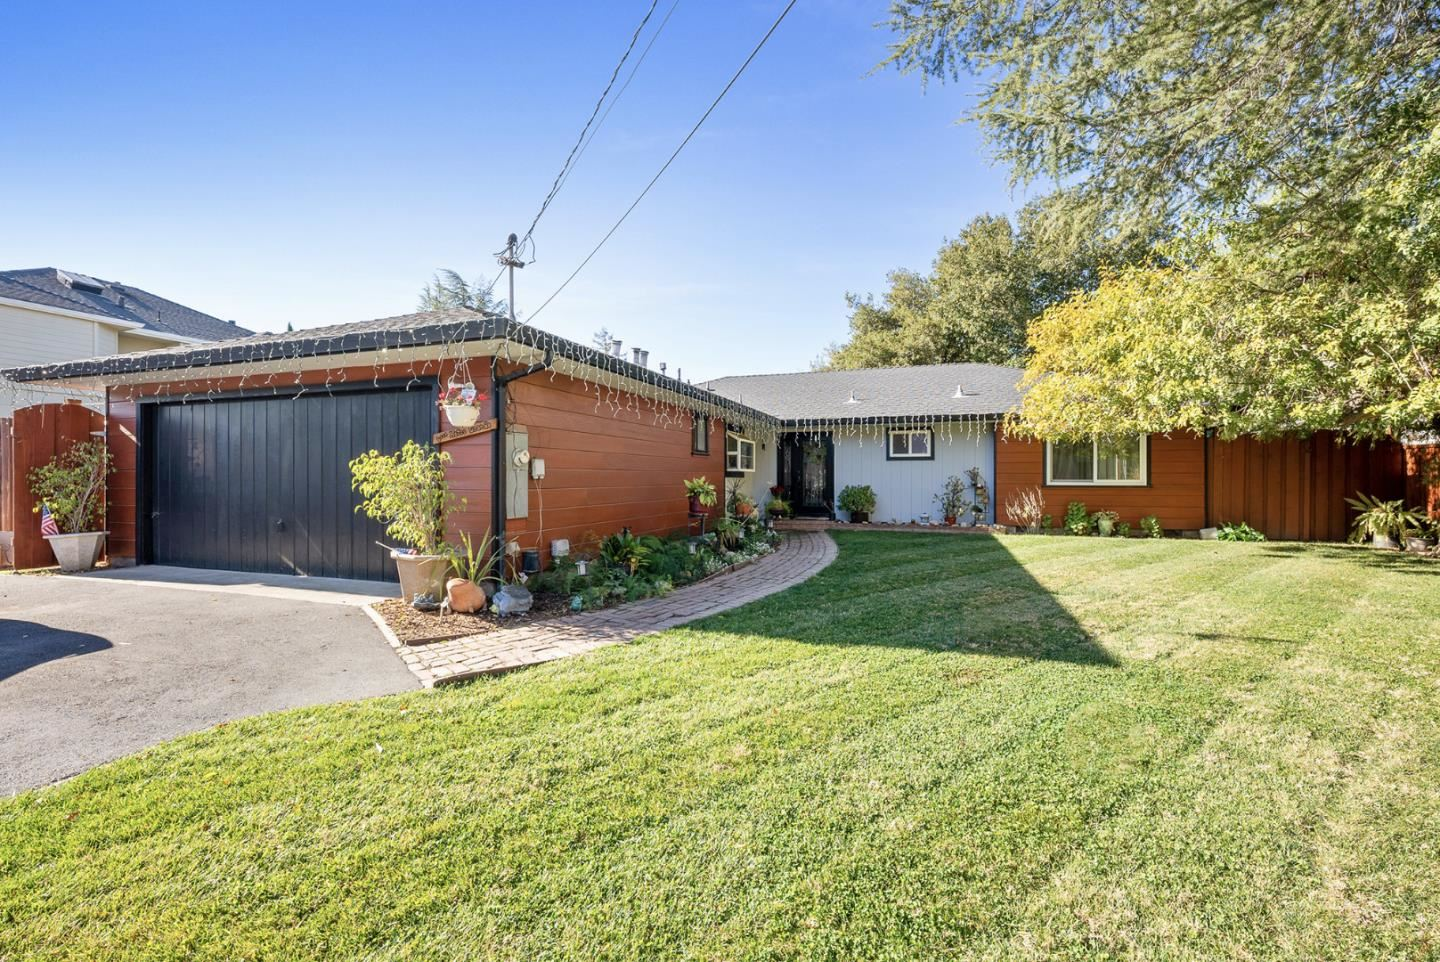 Photo for 15425 National AVE, LOS GATOS, CA 95032 (MLS # ML81825530)